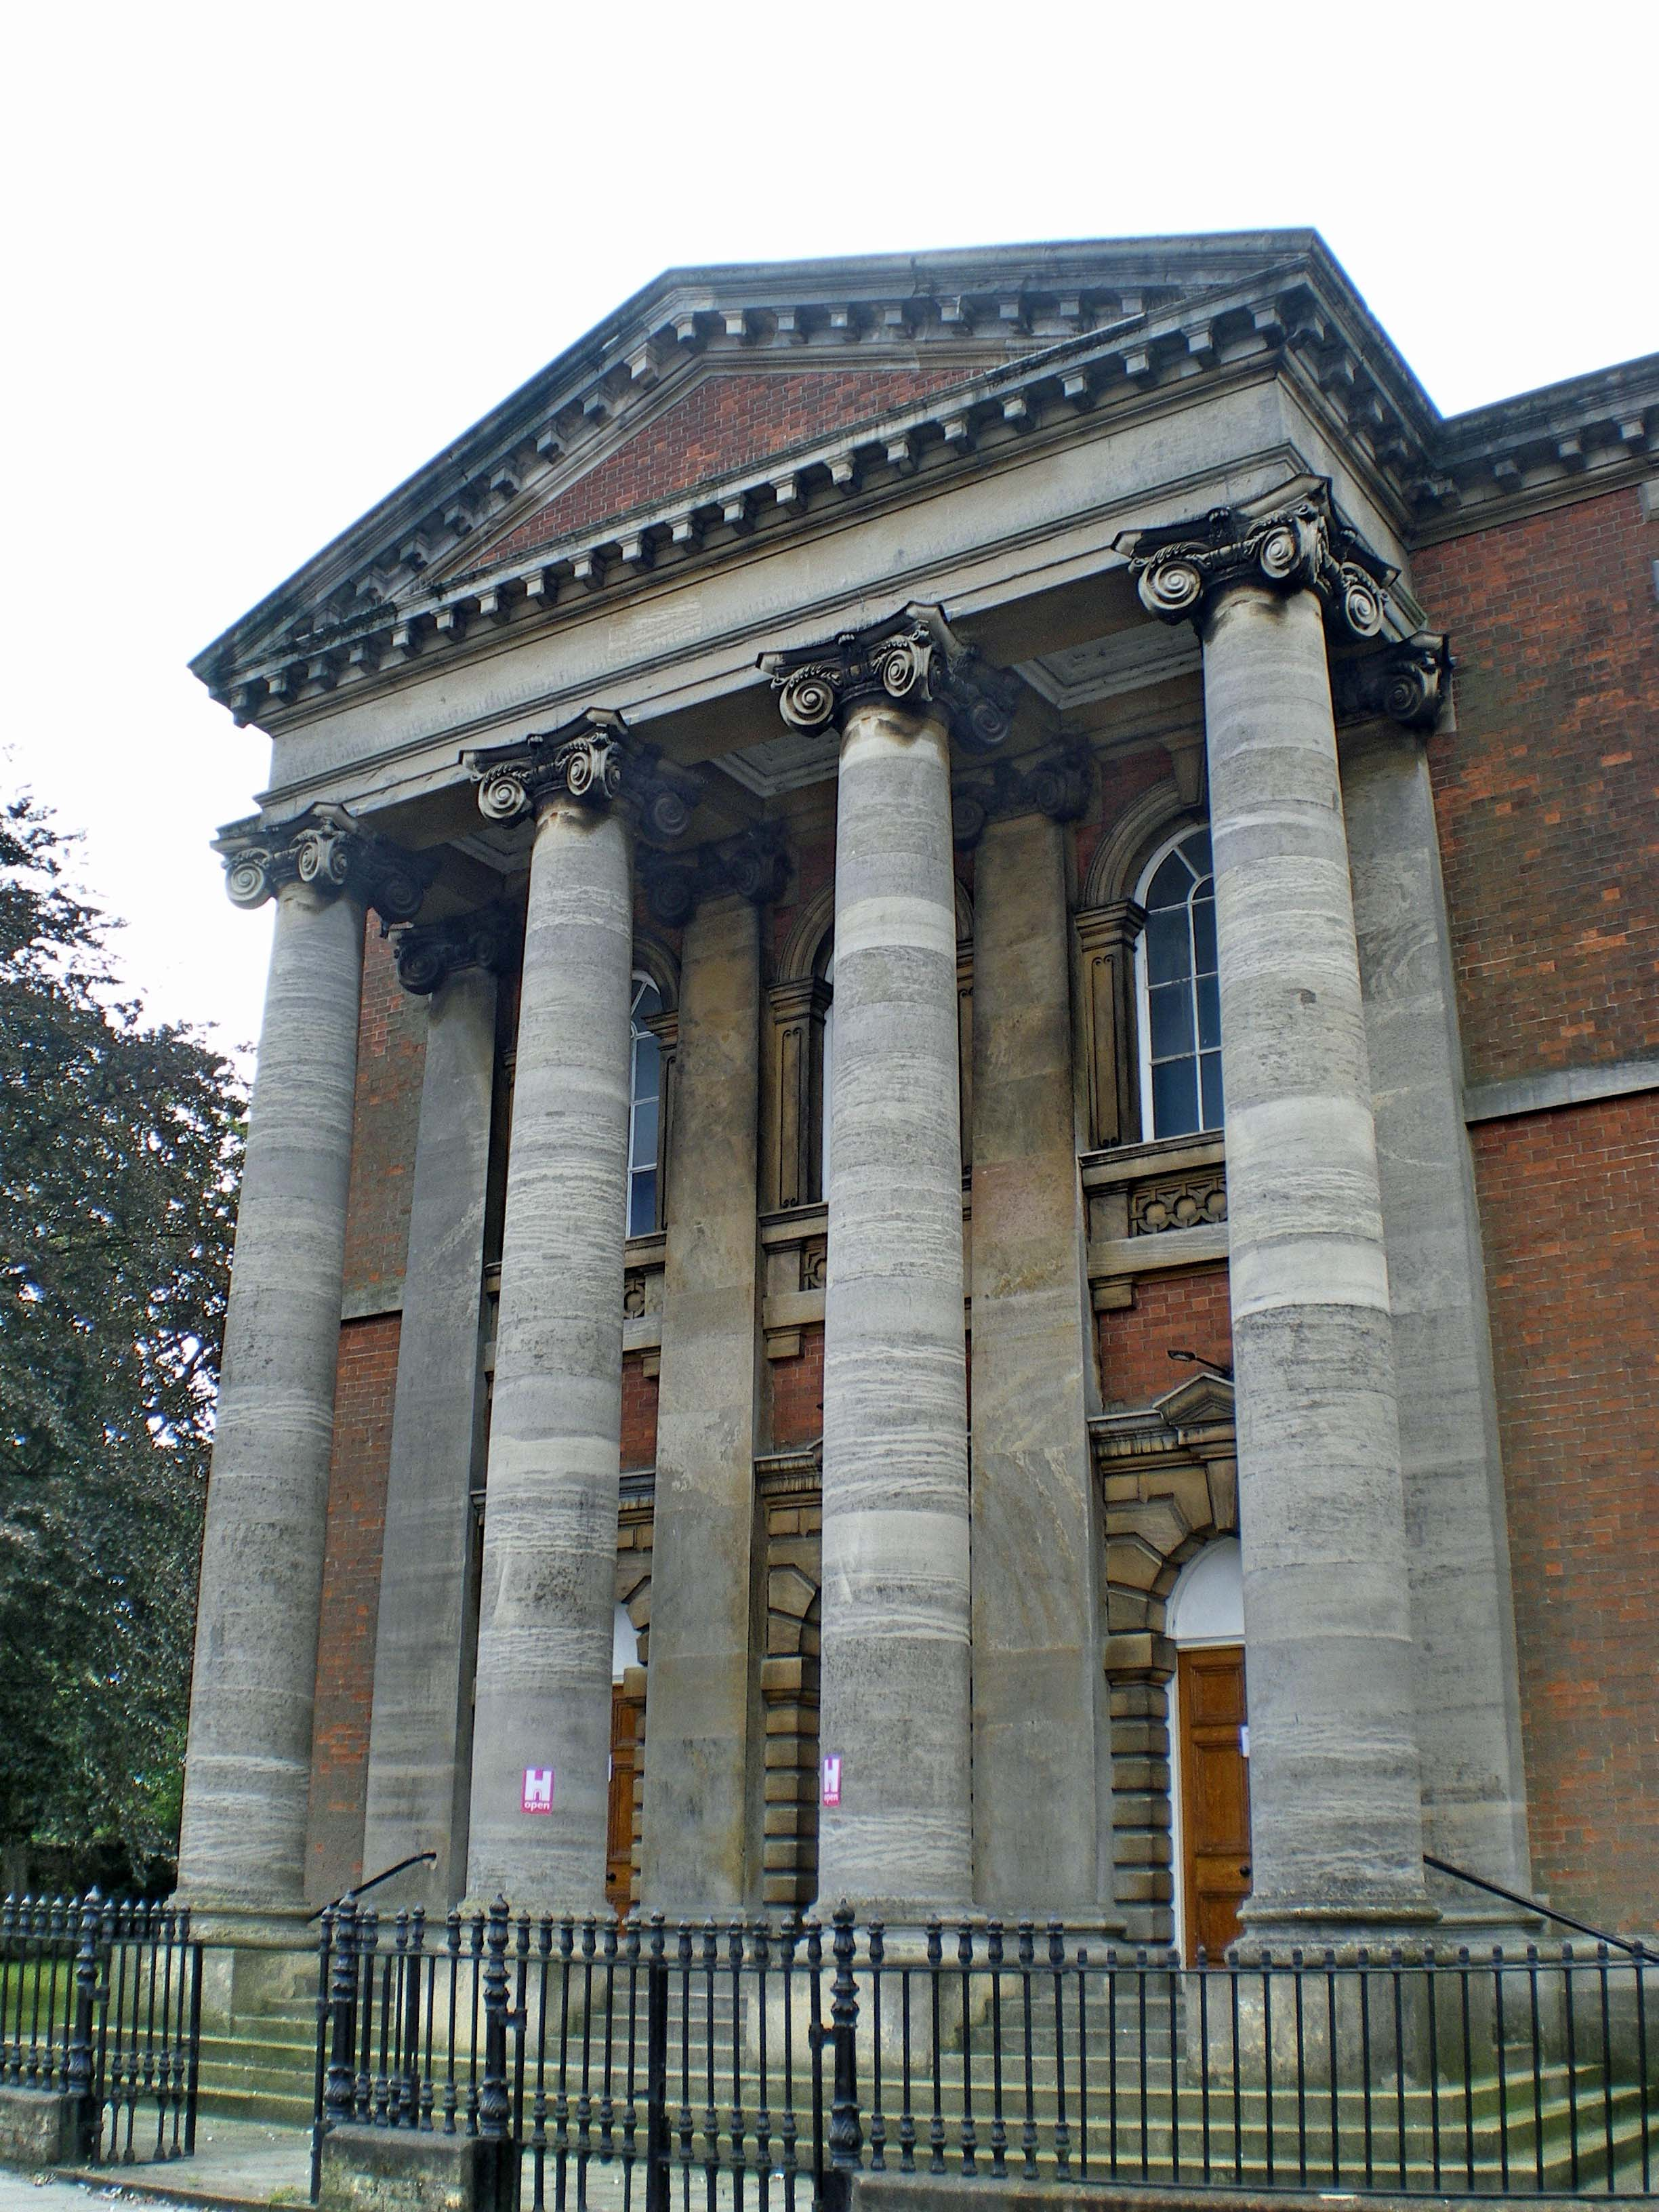 A photo of a the front of a large red brick building, showing two ranks of four very tall stone columns supporting a pediment.